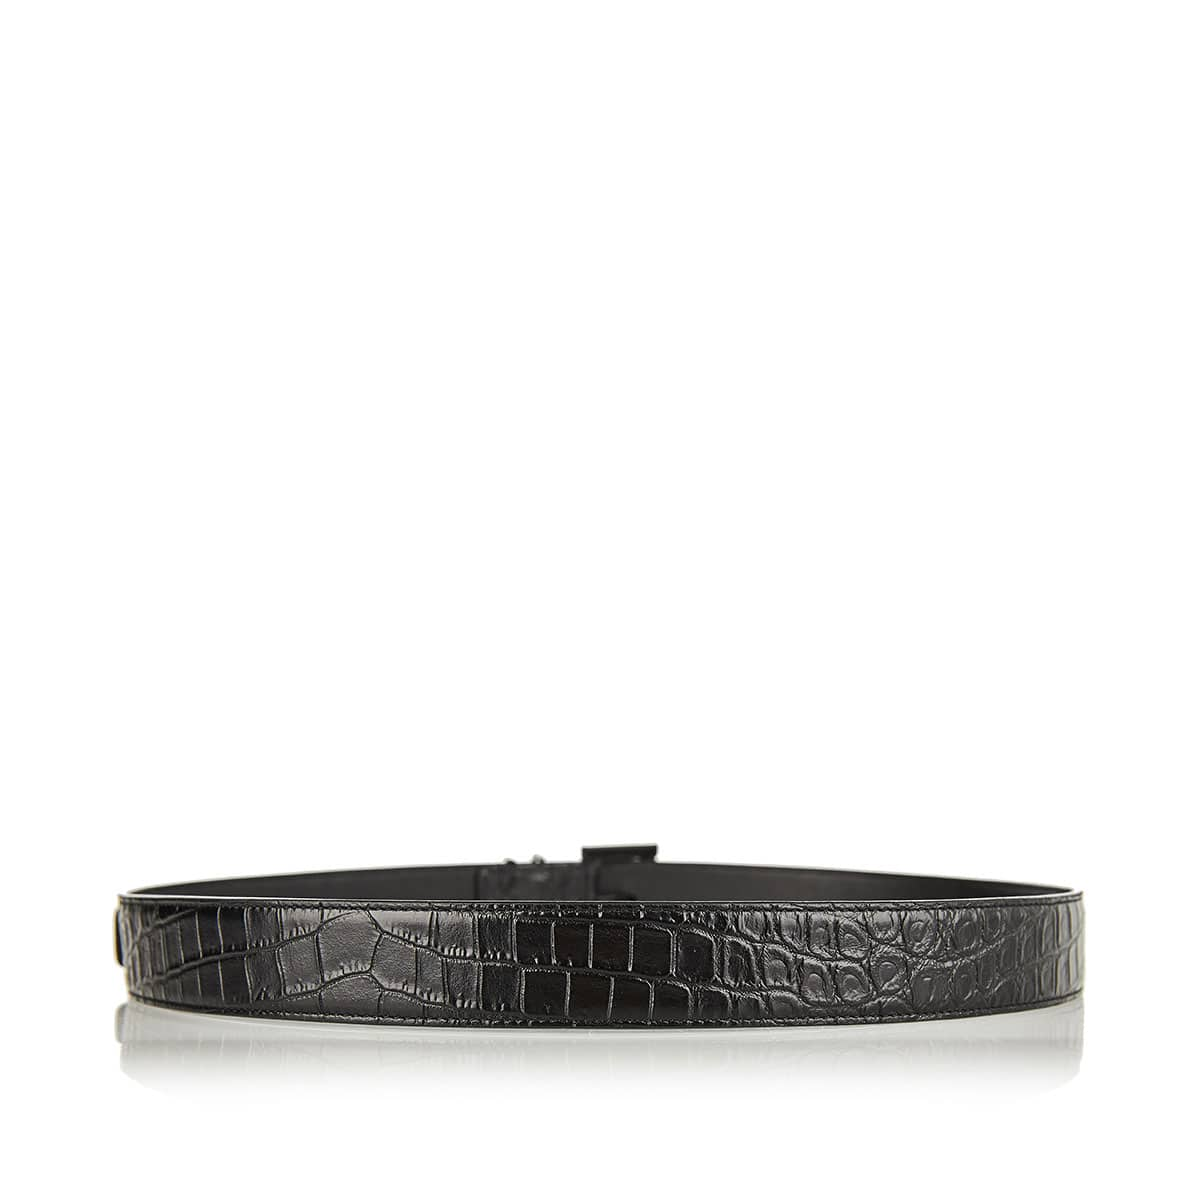 YSL croc-effect leather belt